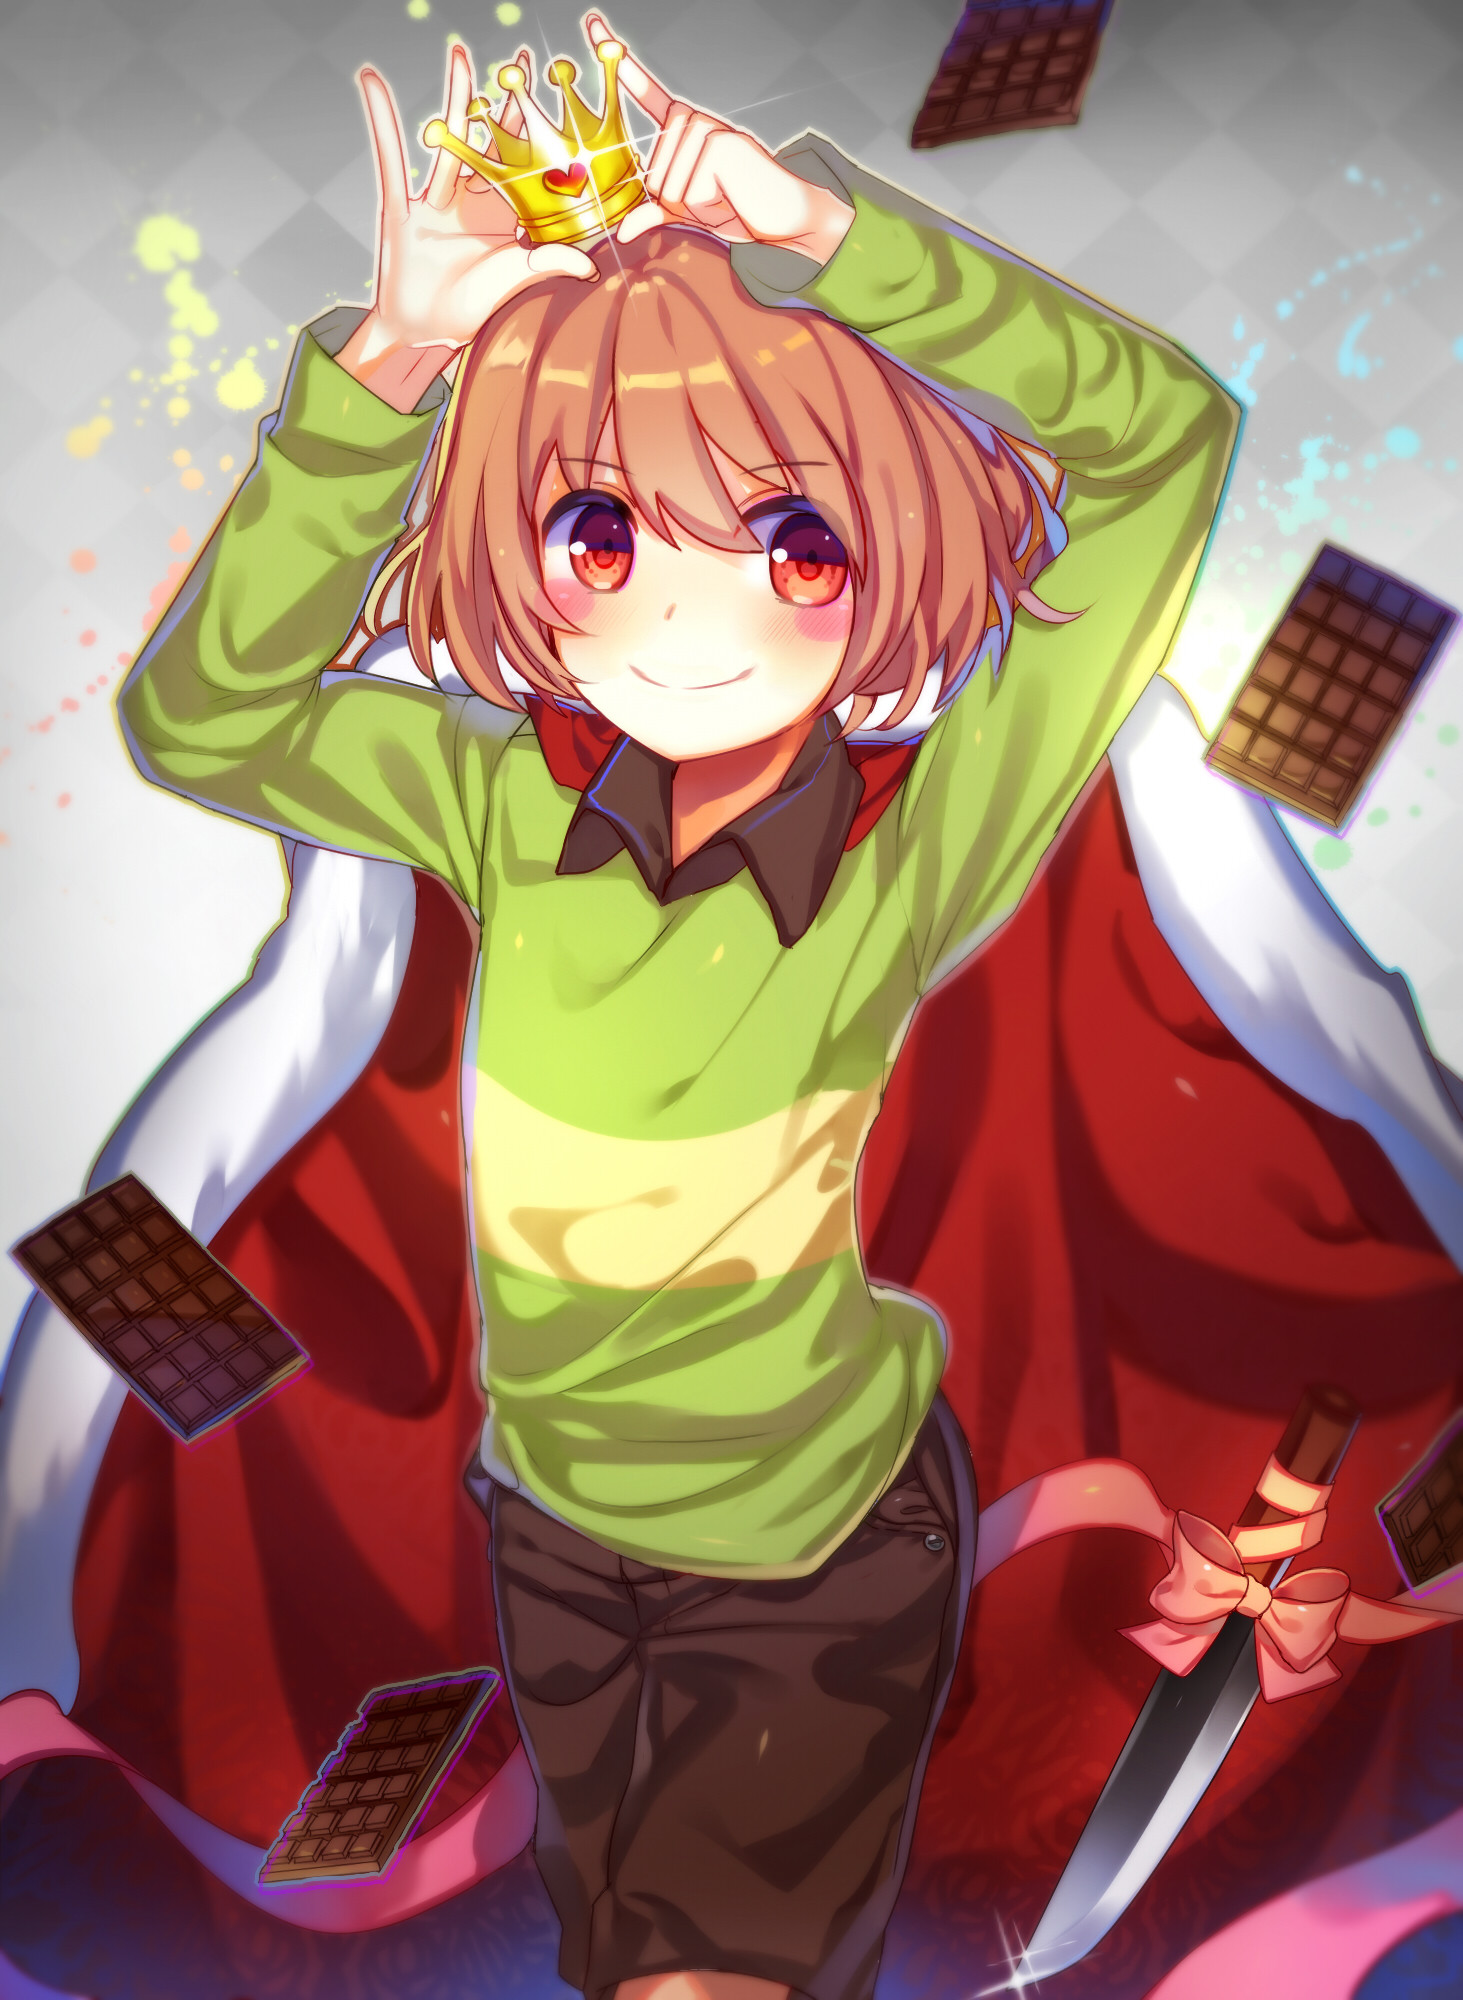 Chara (Undertale) · download Chara (Undertale) image